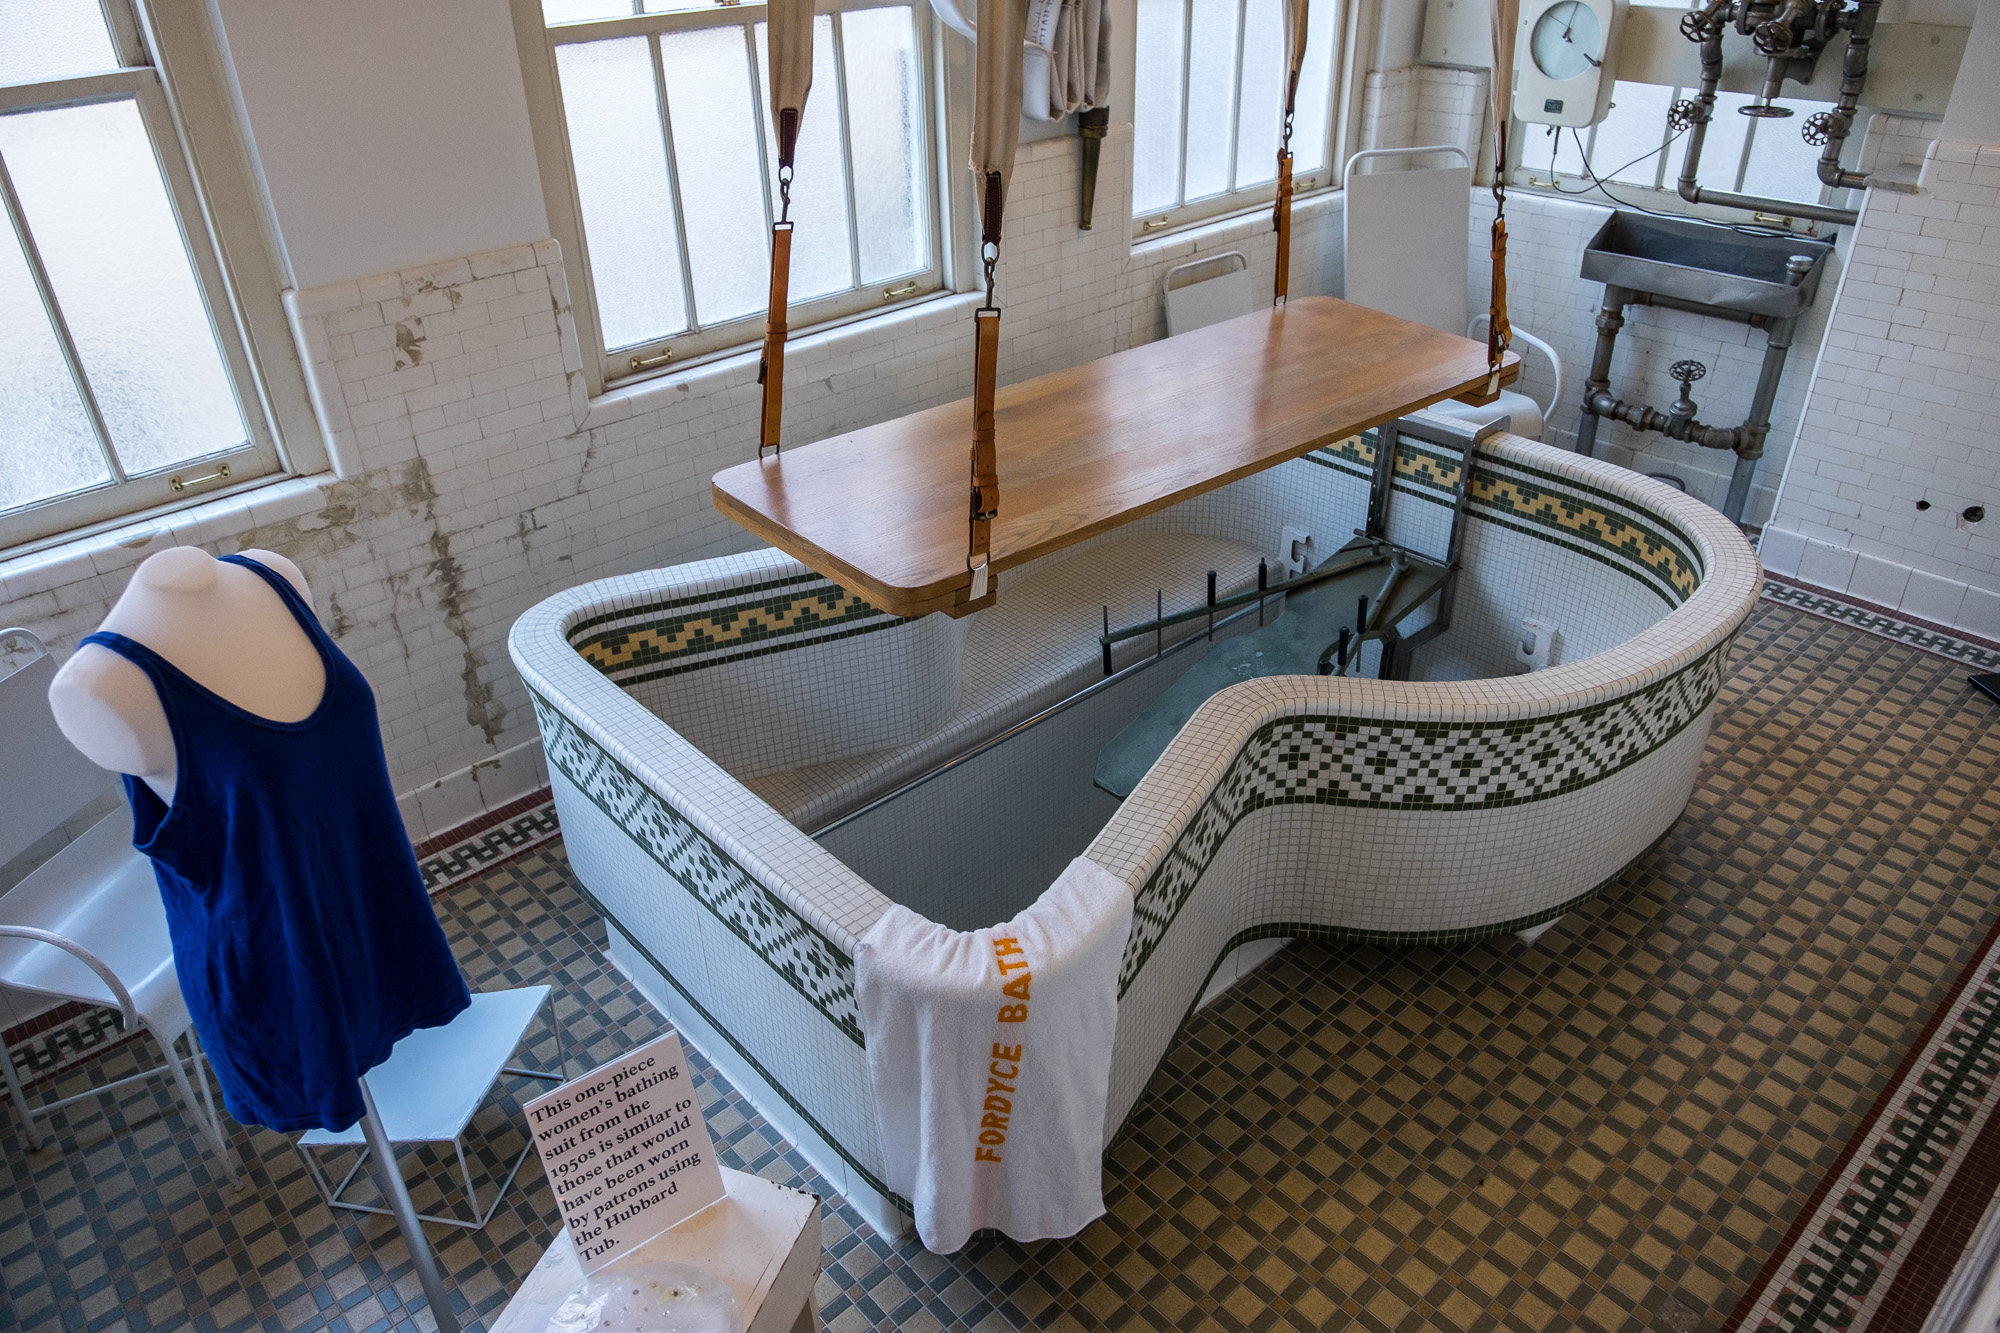 For special afflictions, this dipping bath was setup in a small room. People were brought  in on conveyer belts strung from the ceiling.